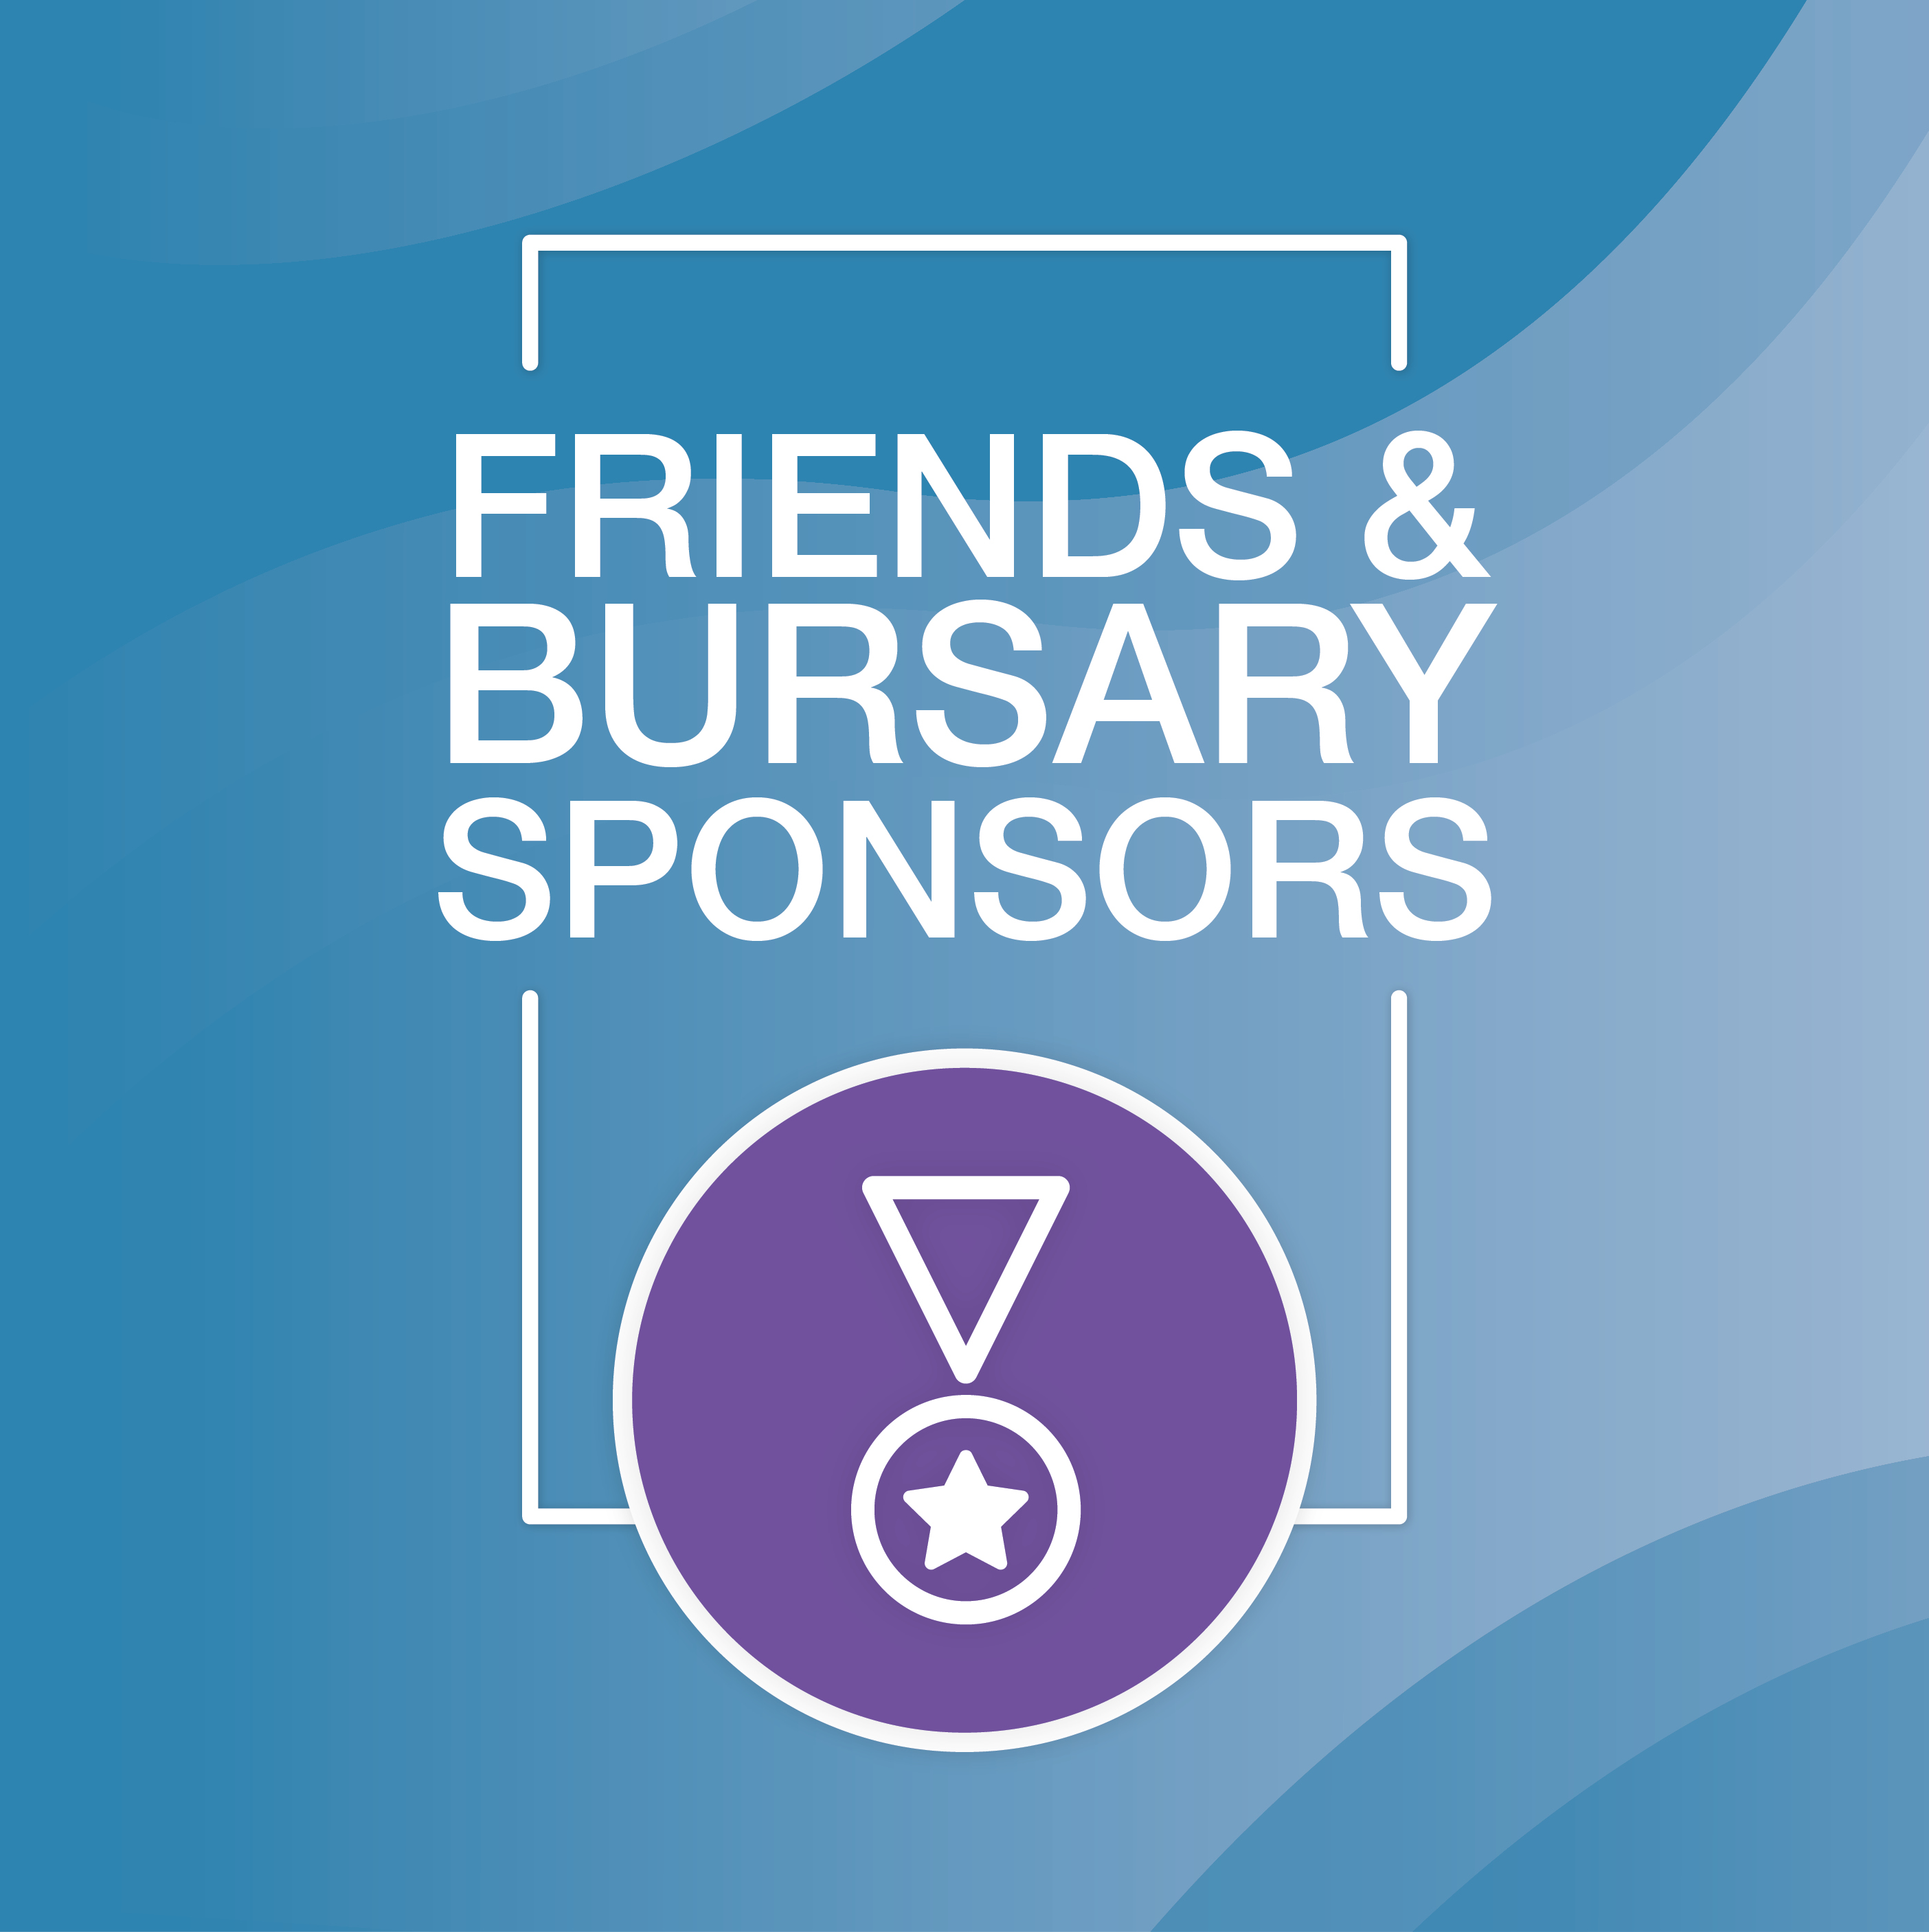 EB2020_Website Imagery_V2_Friends Bursary